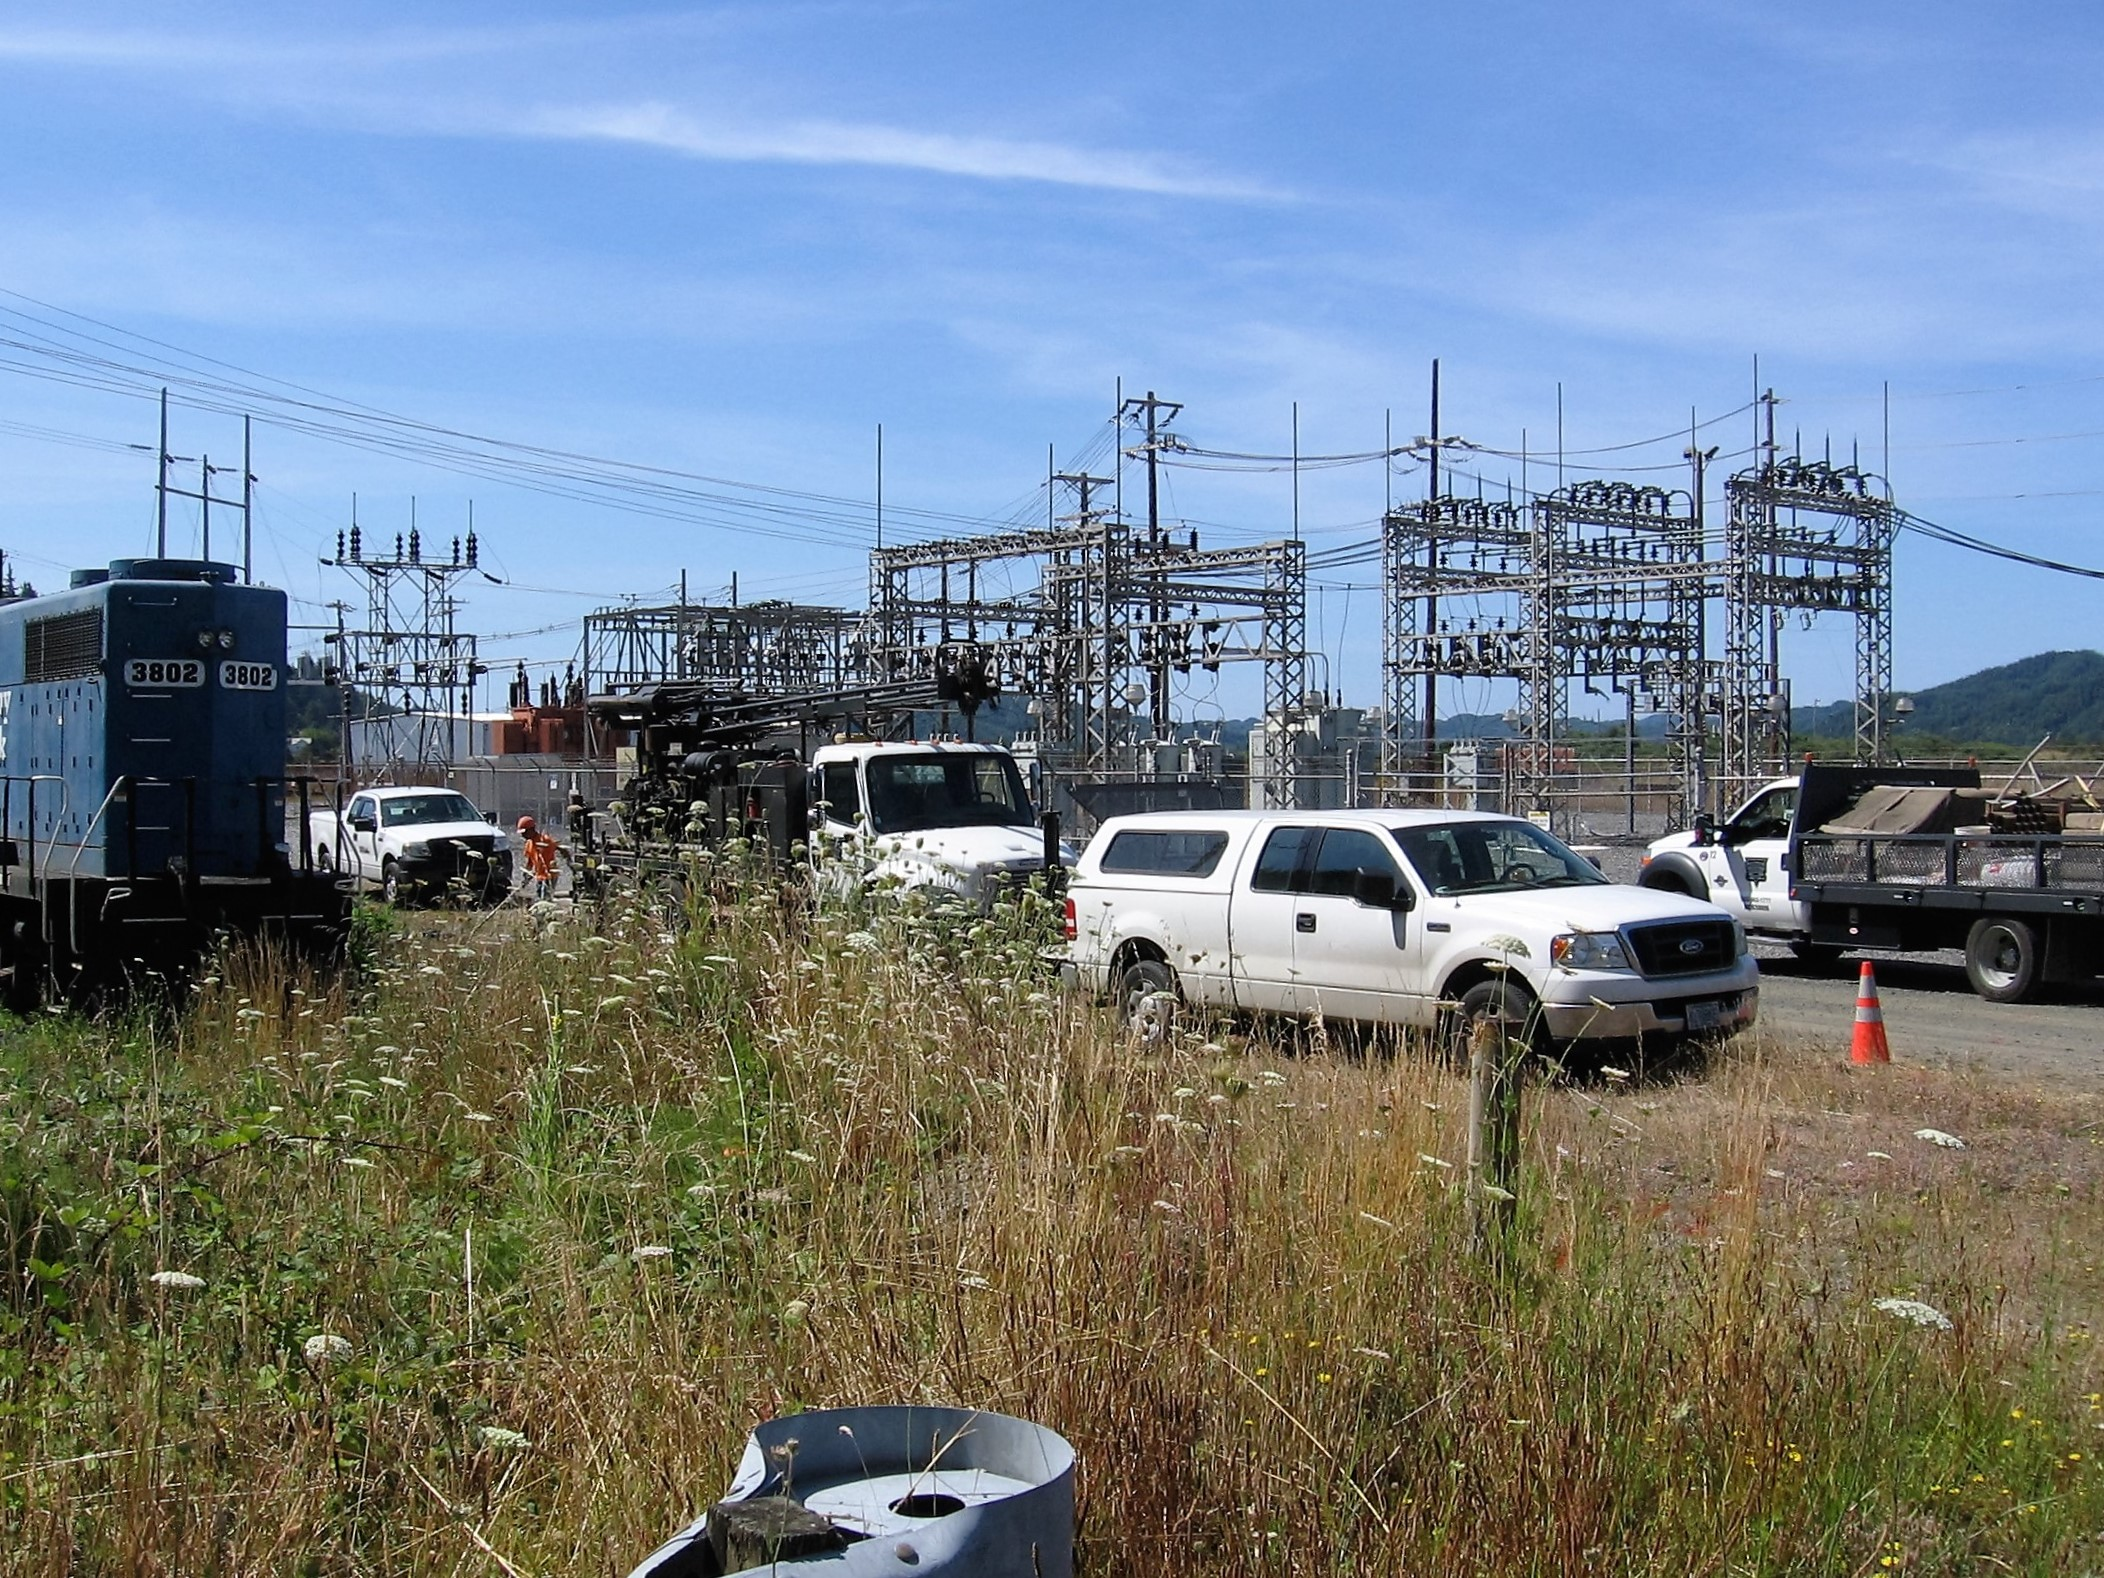 Central Lincoln People's Utility District Substation 305 | Douglas County, Oregon